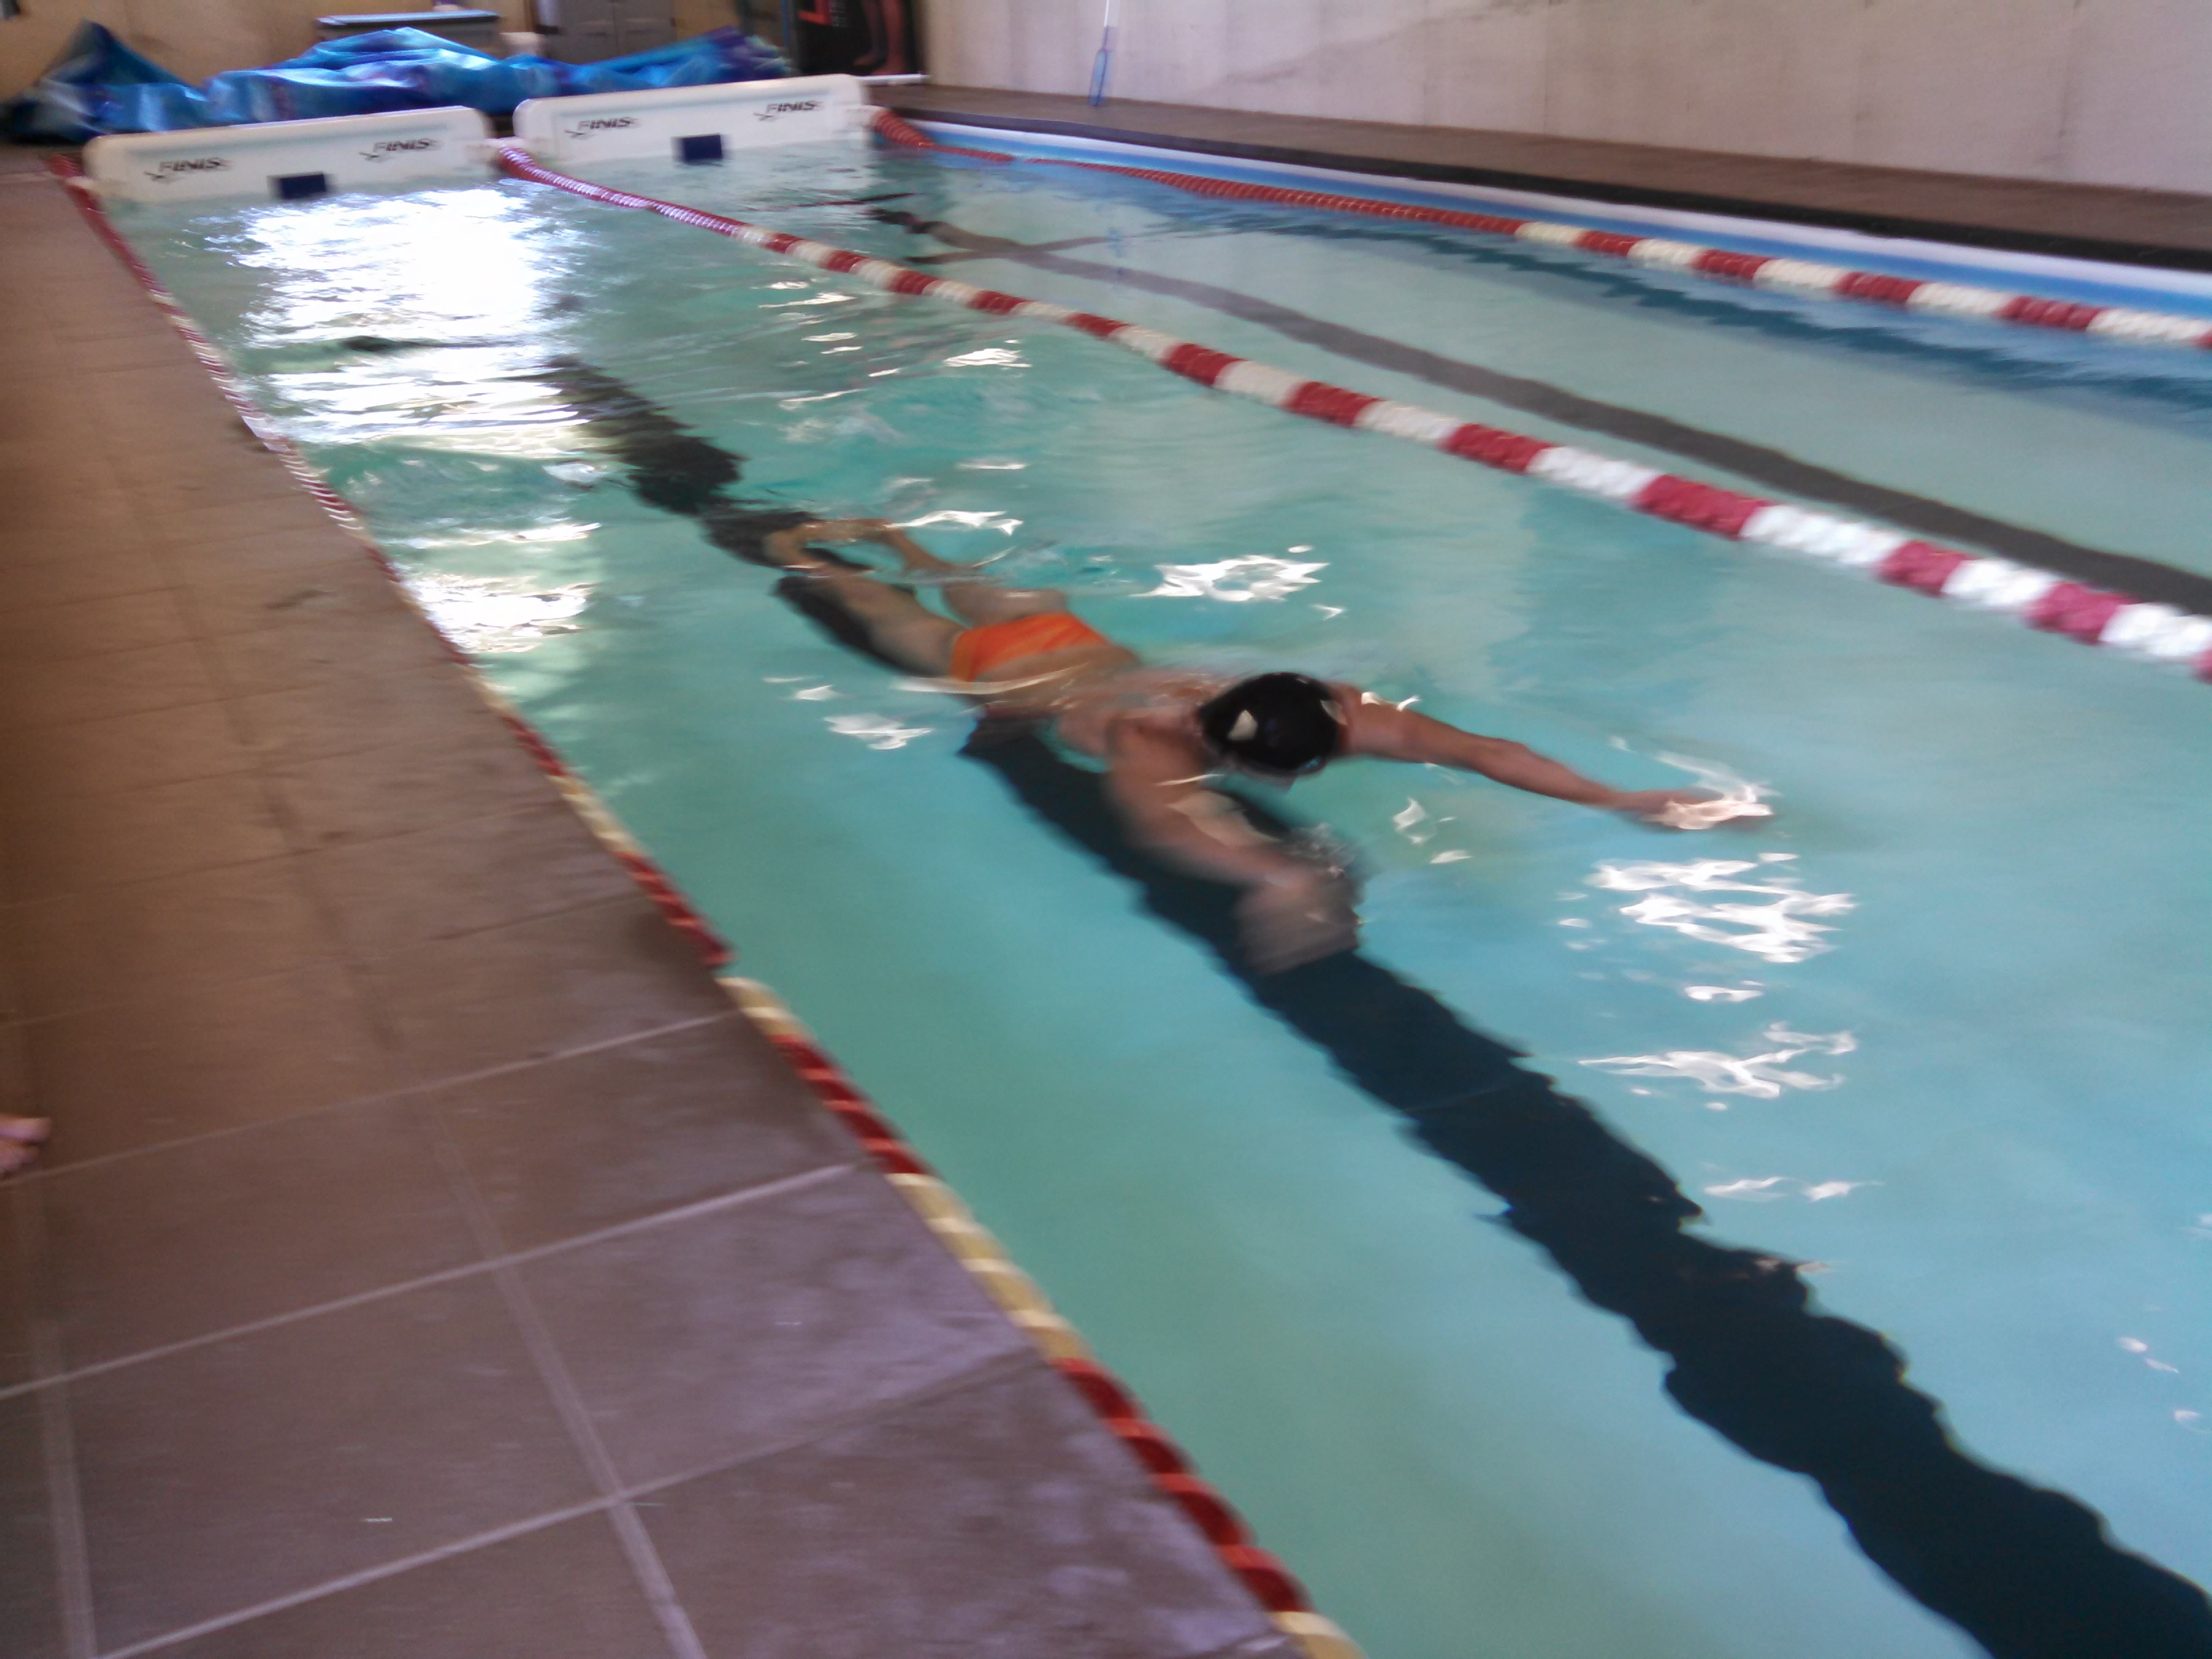 Michael Andrew working out at his family's indoor pool near Lawrence. (Photo by Ian Echlin)